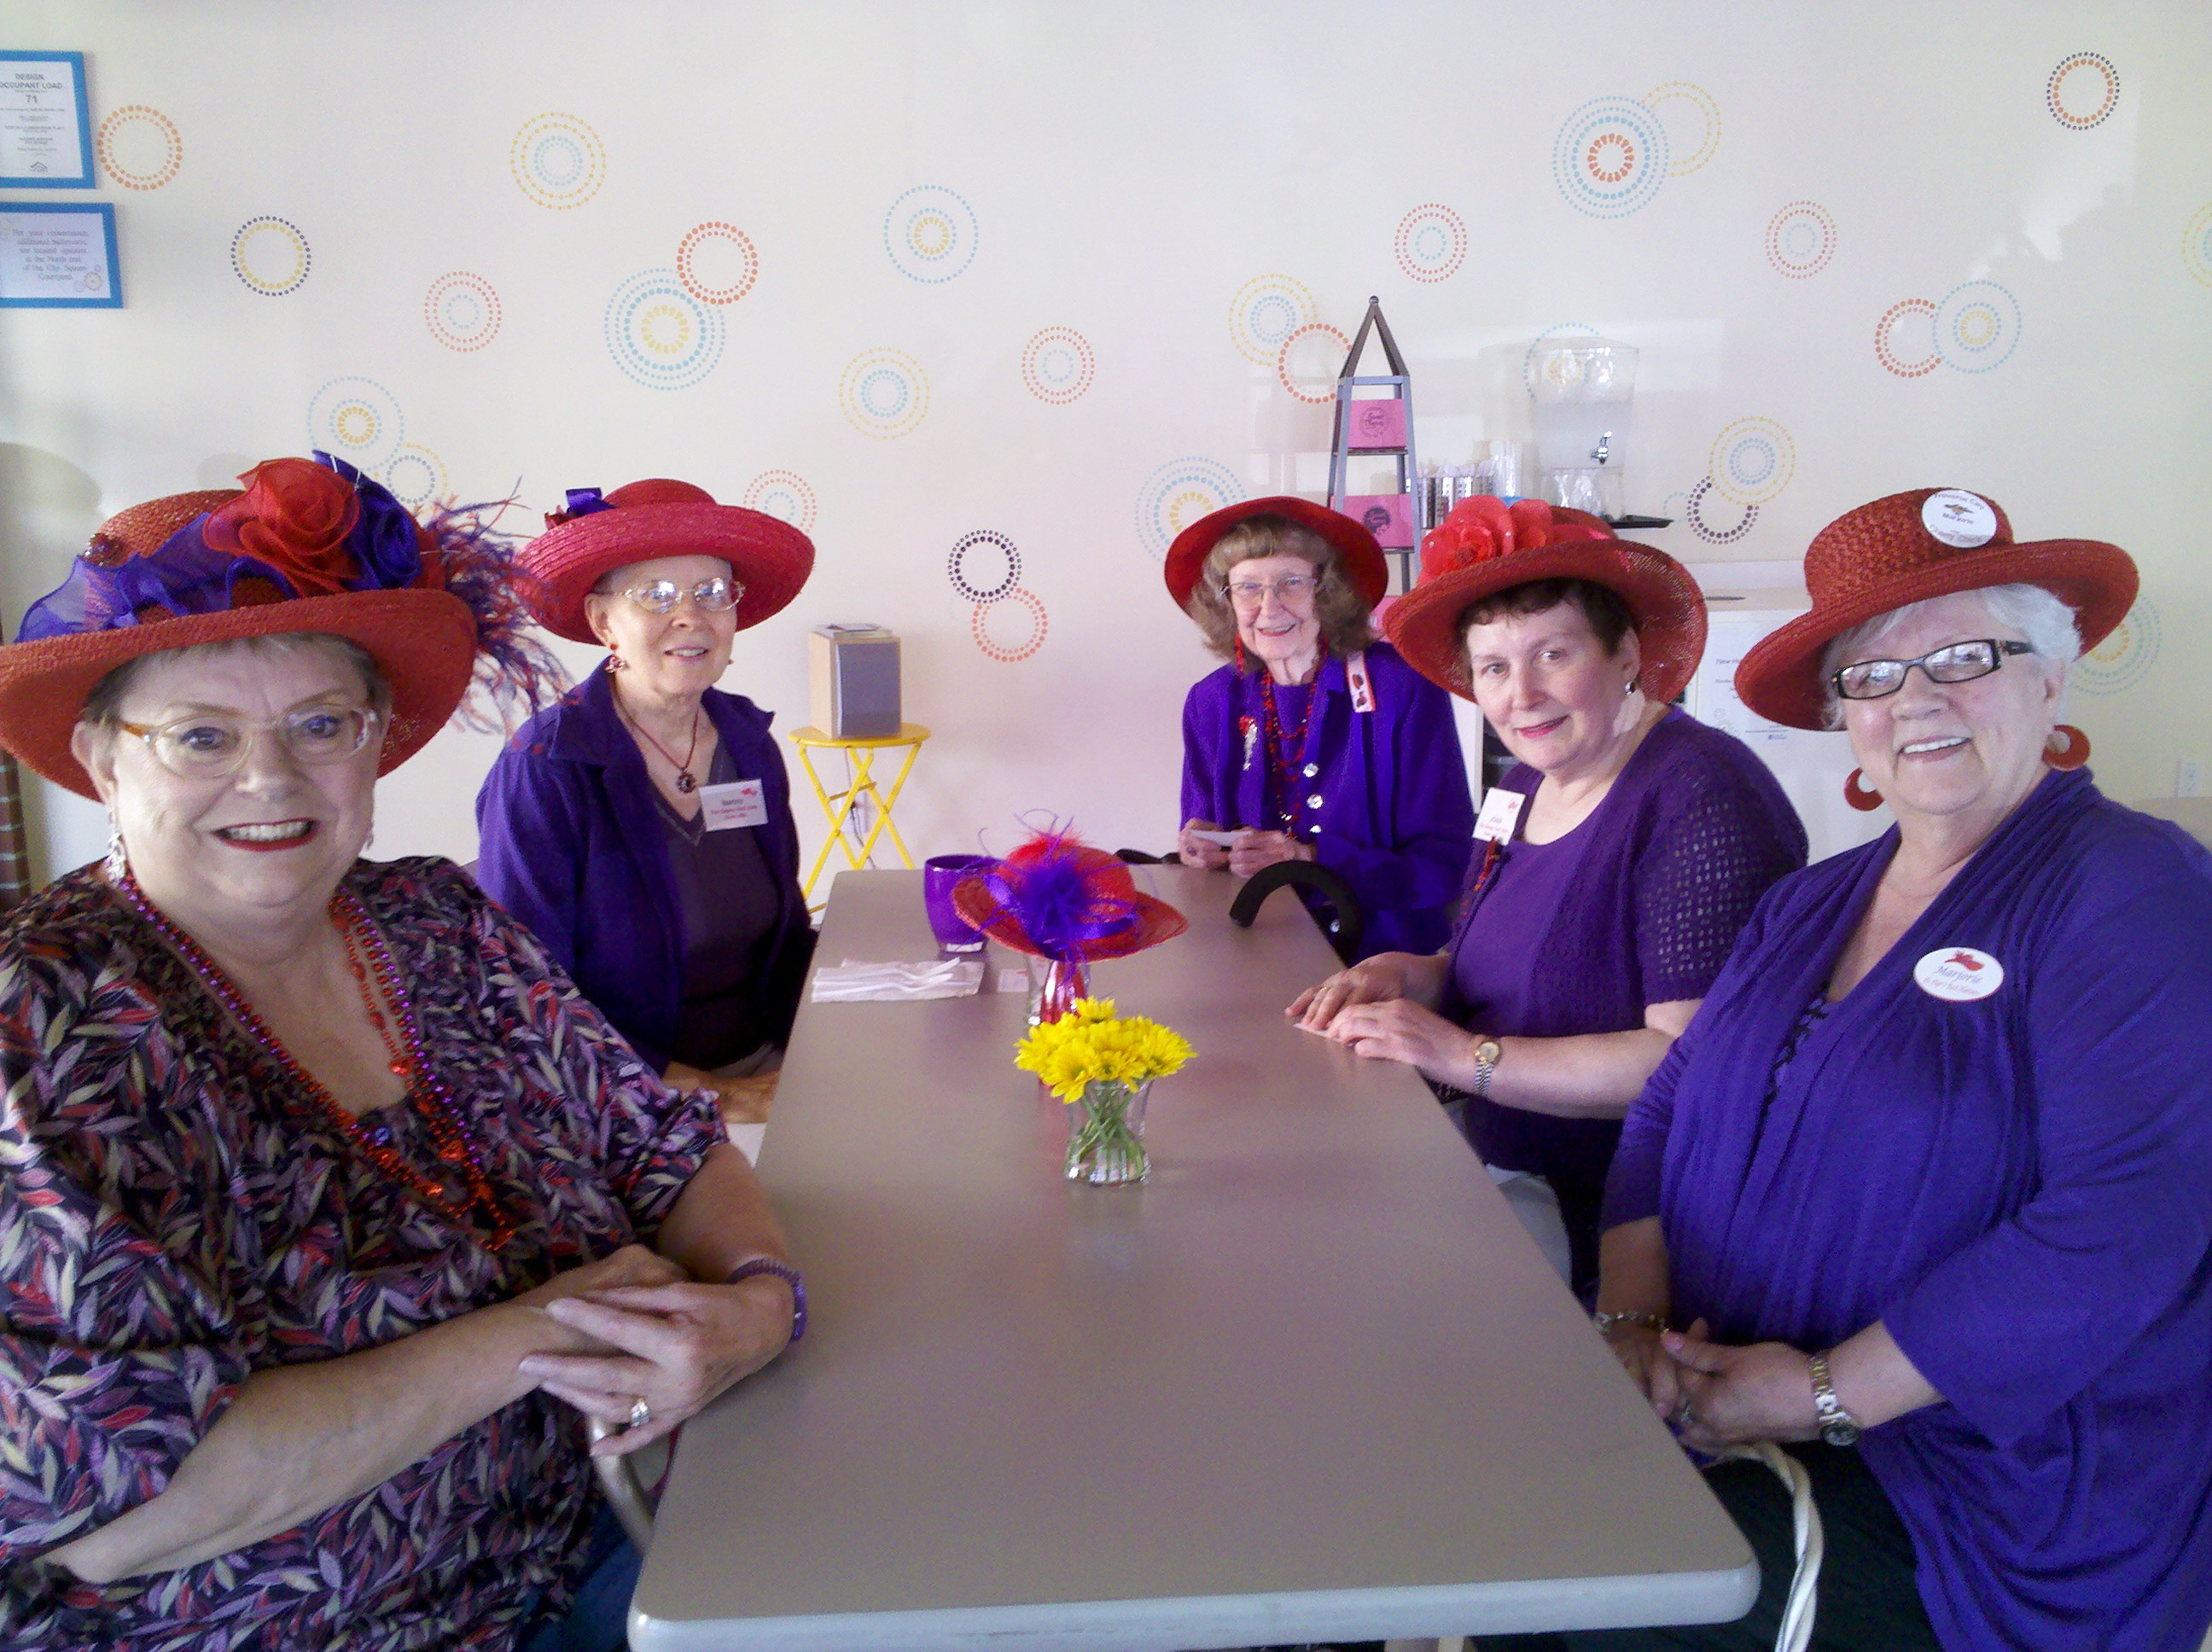 The Sassy Red Hats of Kent joined us for lunch at Sweet Themes Bakery today!